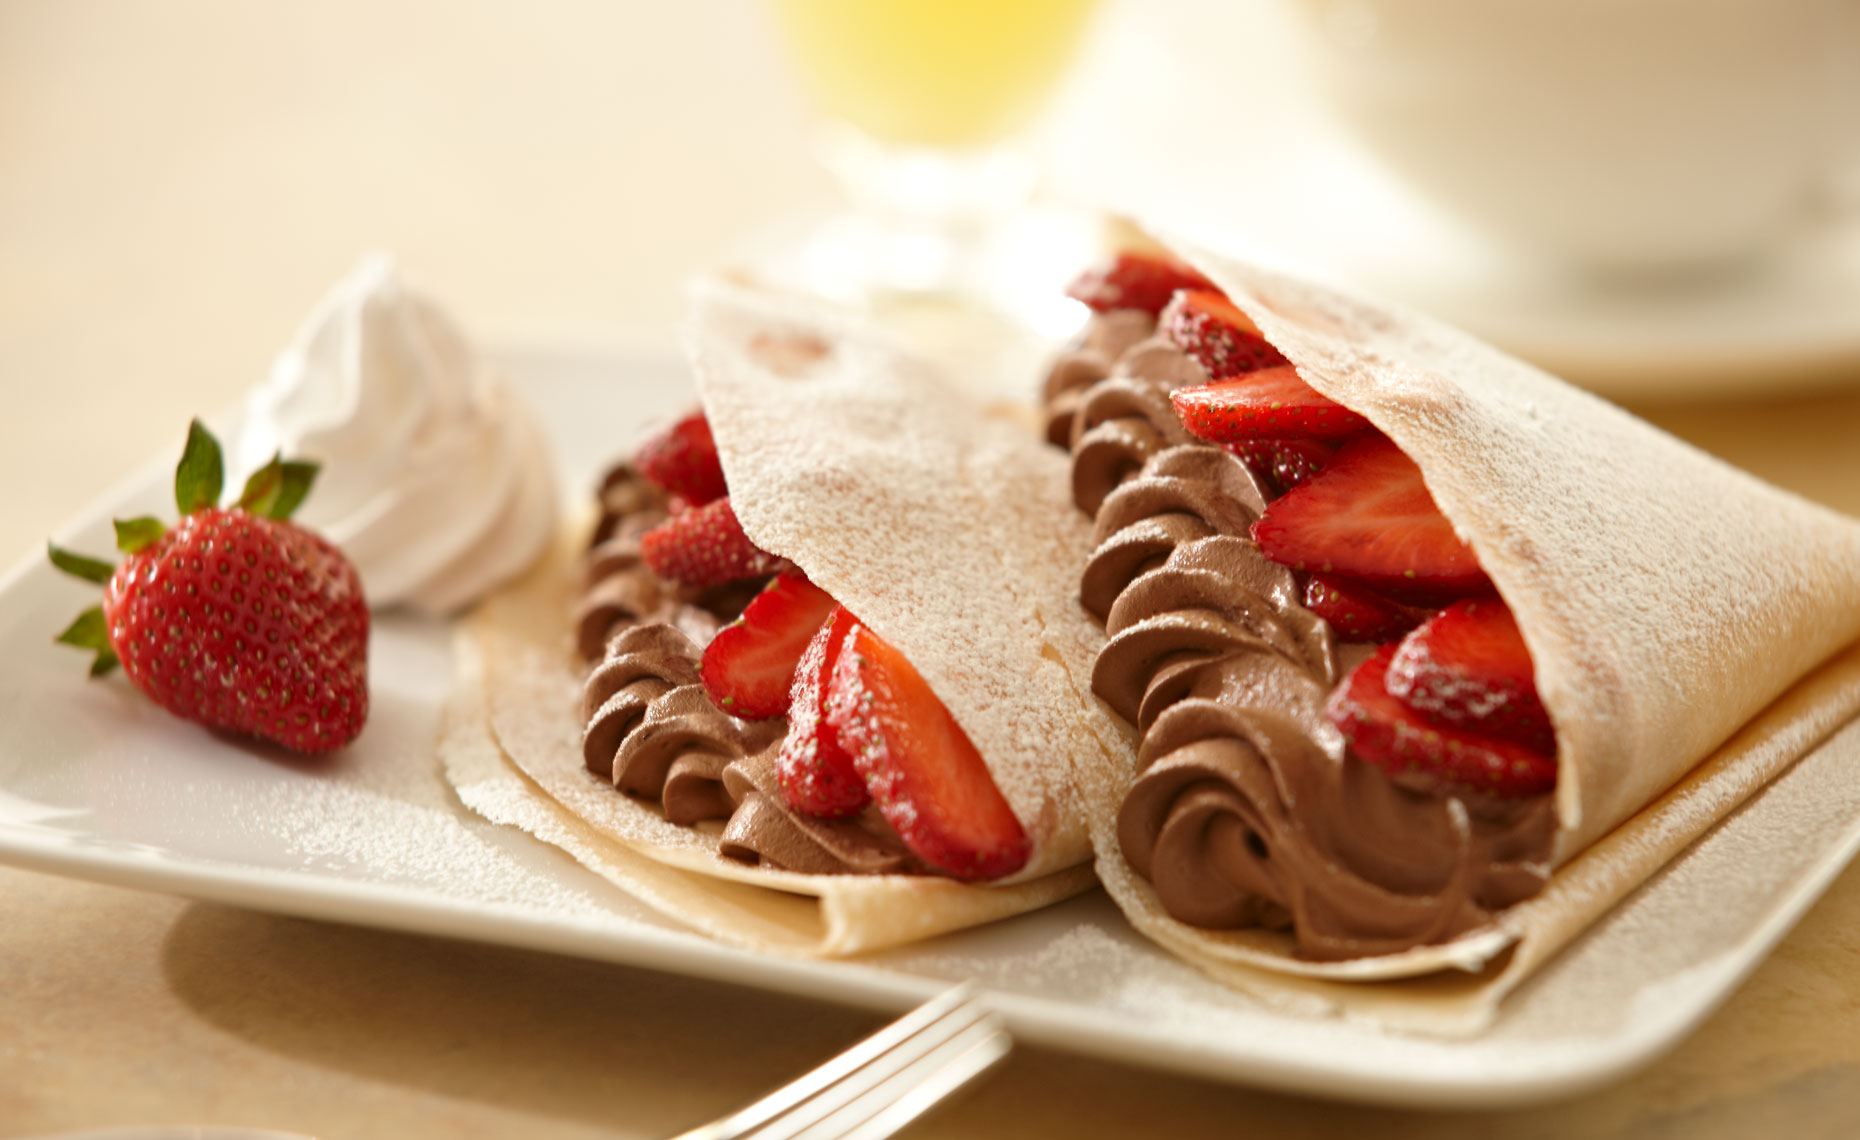 dessert-sweets-photographers-crepe-mousse-strawberries-14